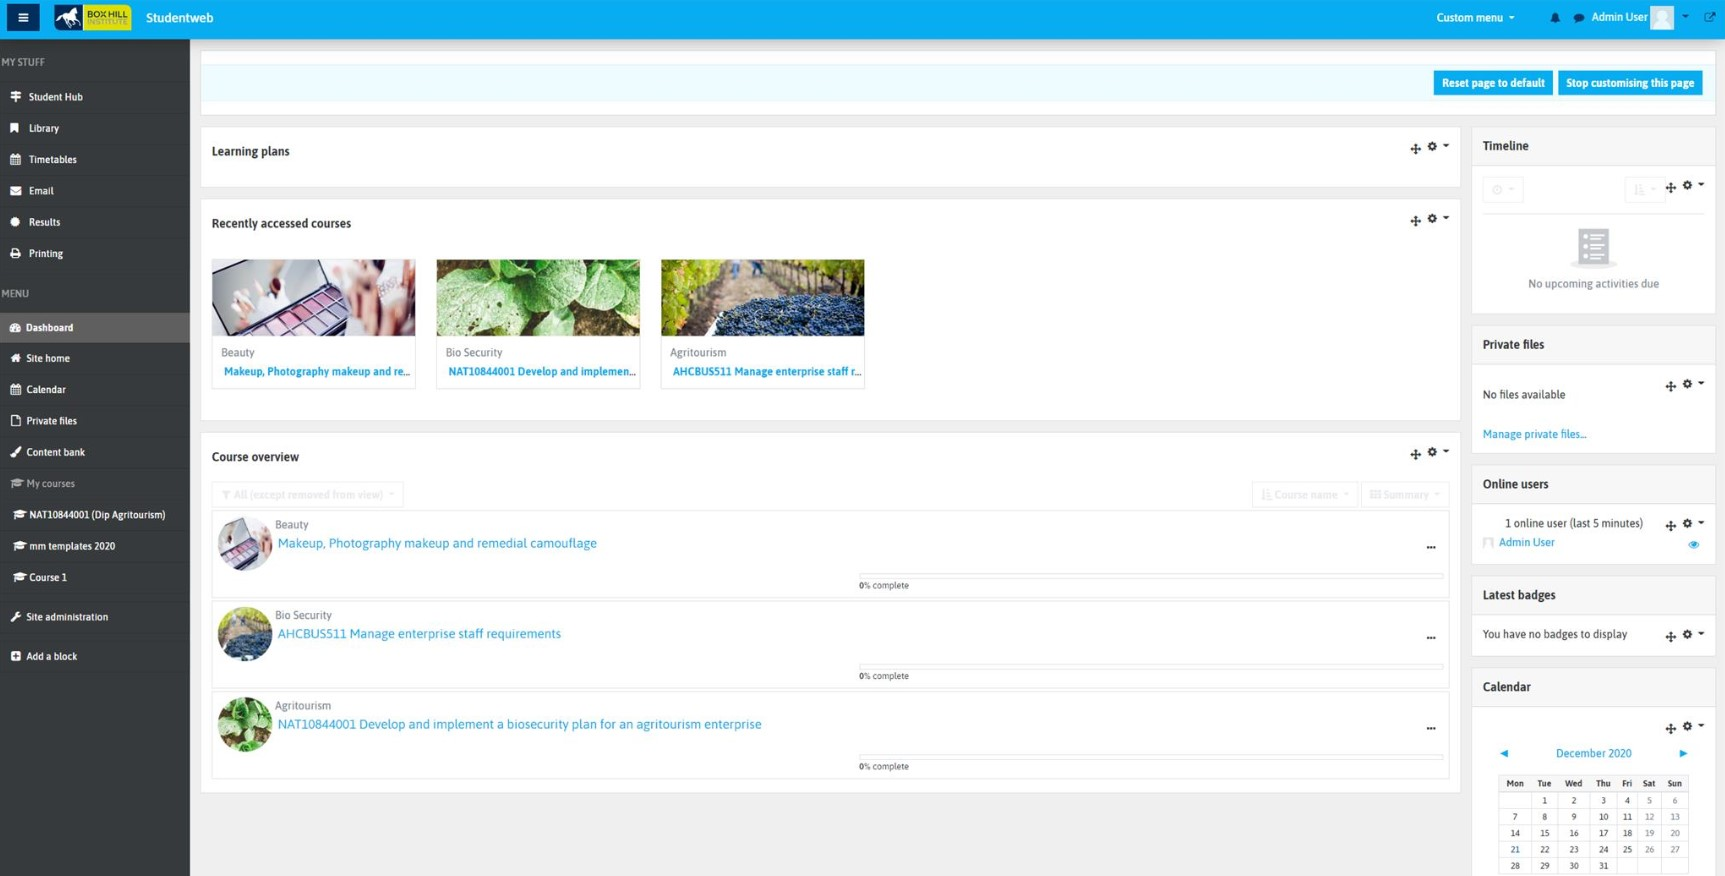 Screenshot of the new moodle dashboards